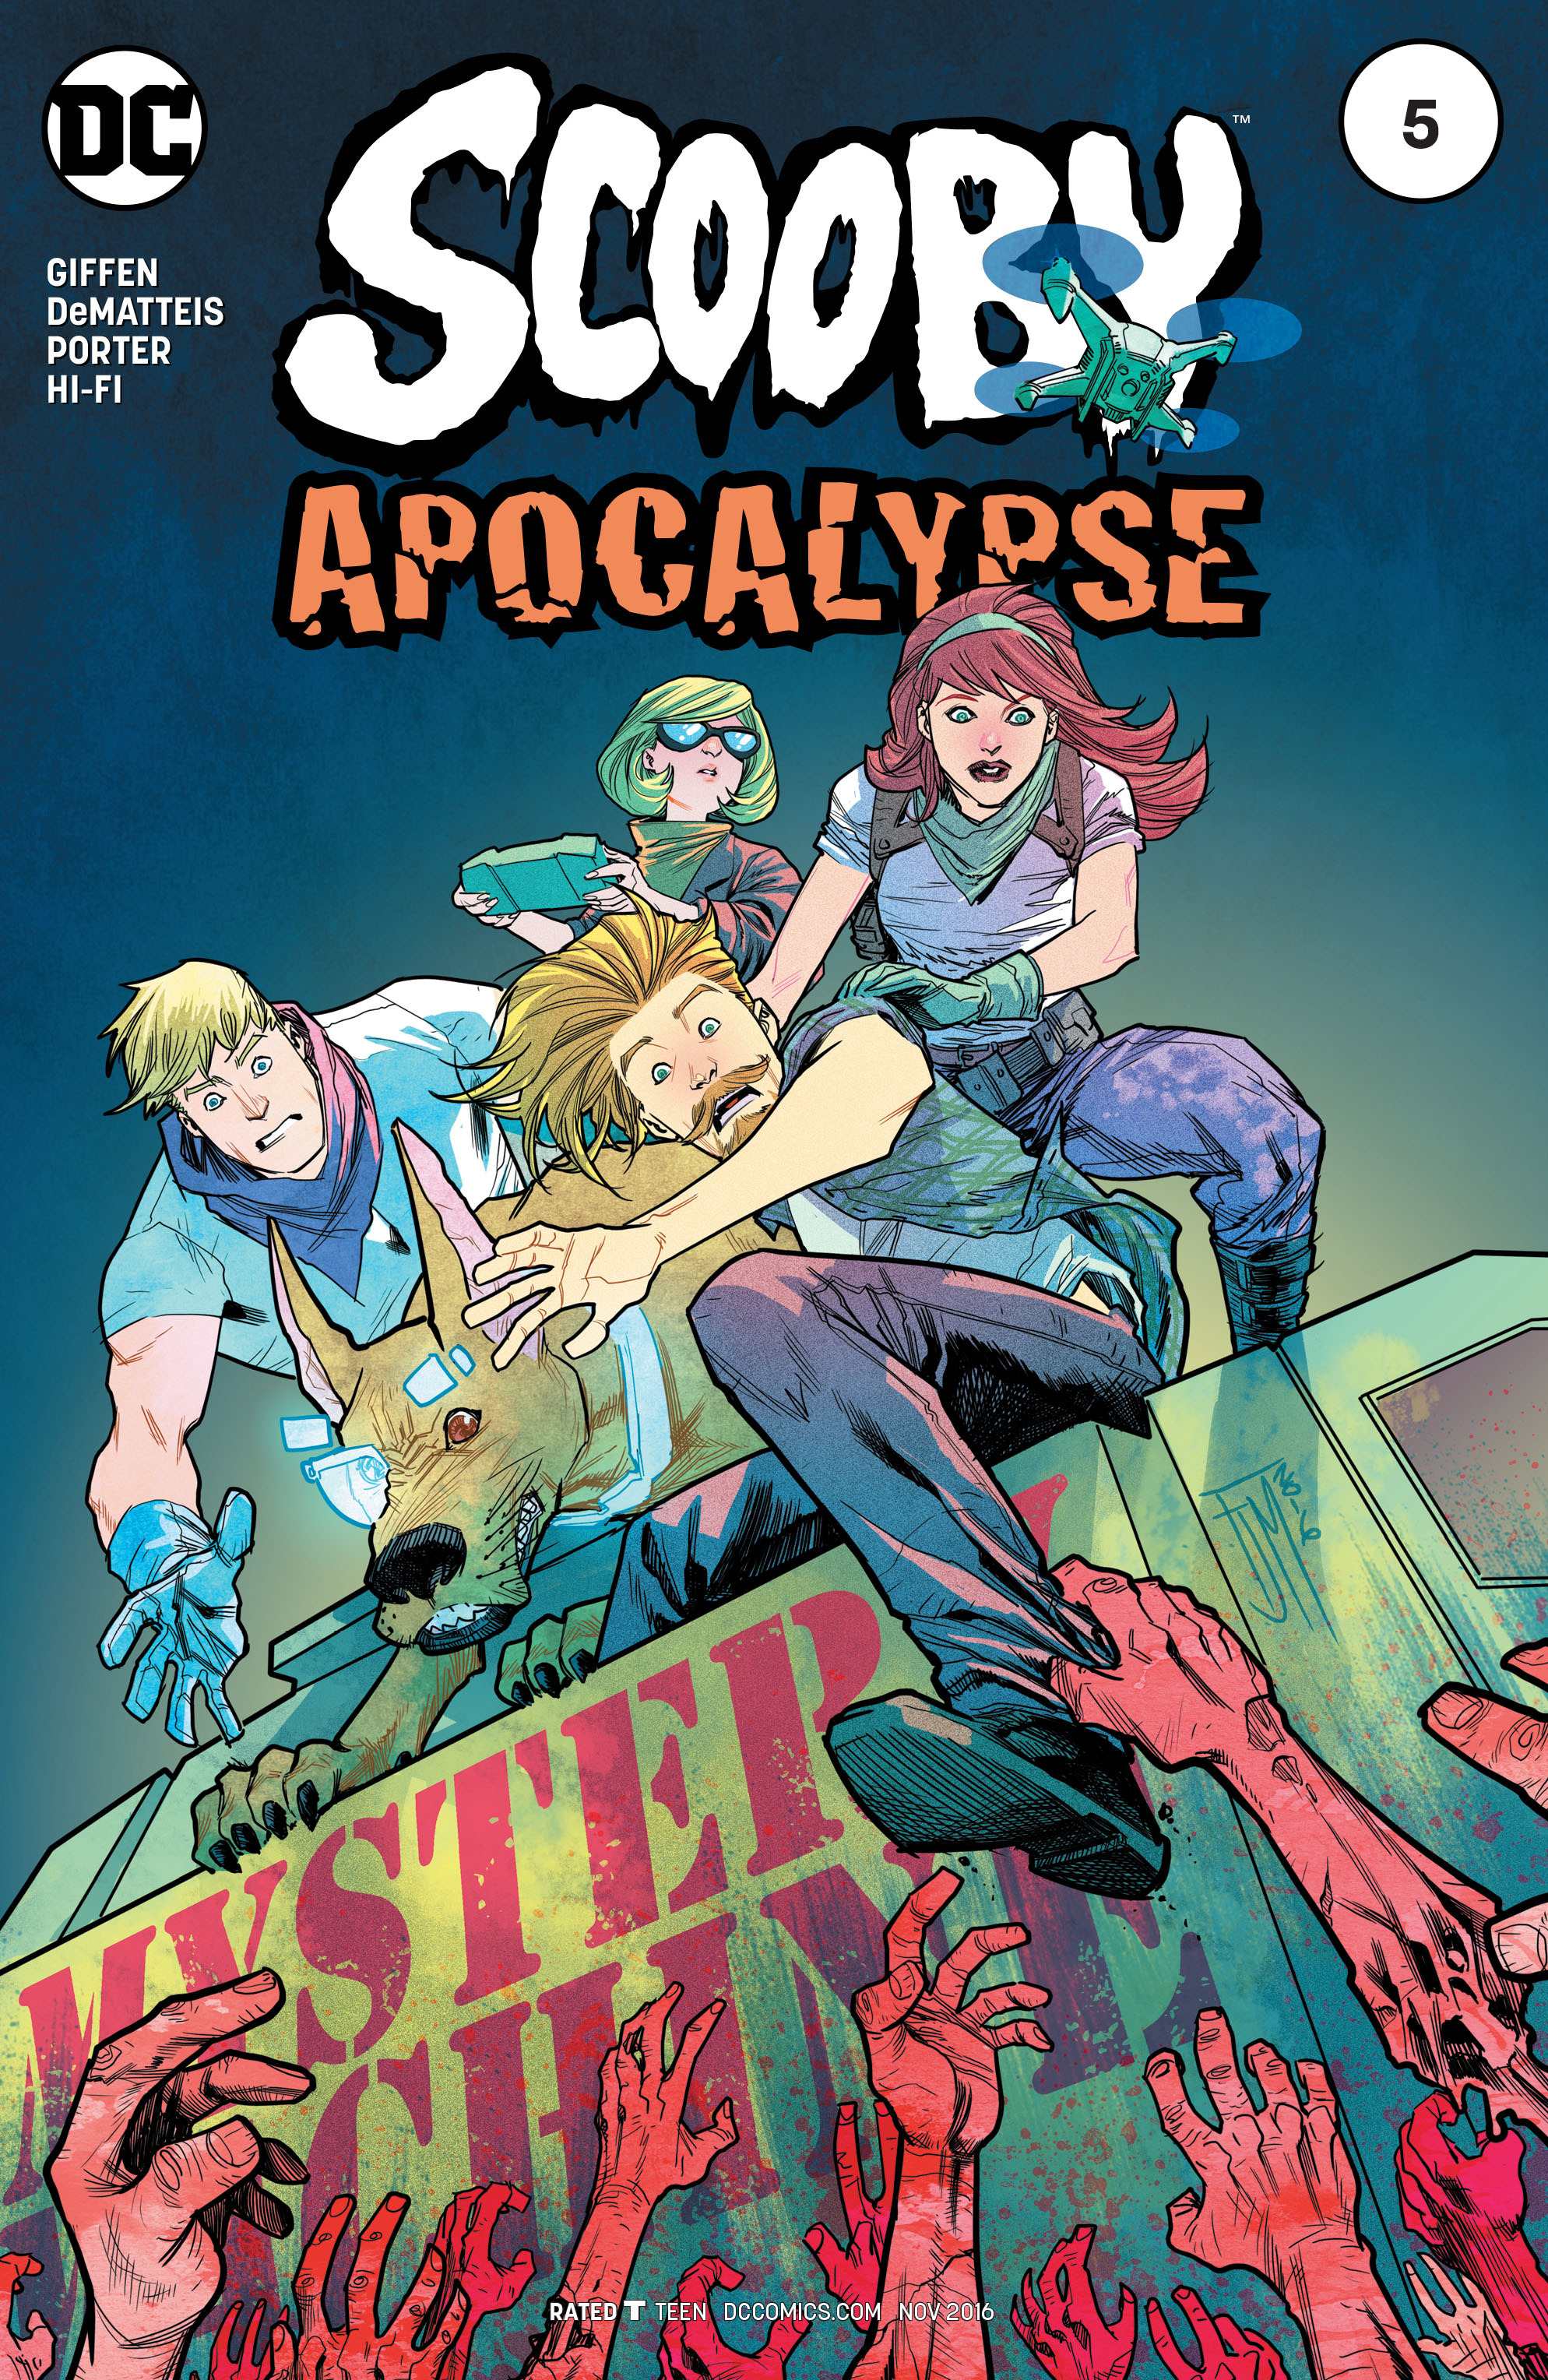 Read online Scooby Apocalypse comic -  Issue #5 - 3